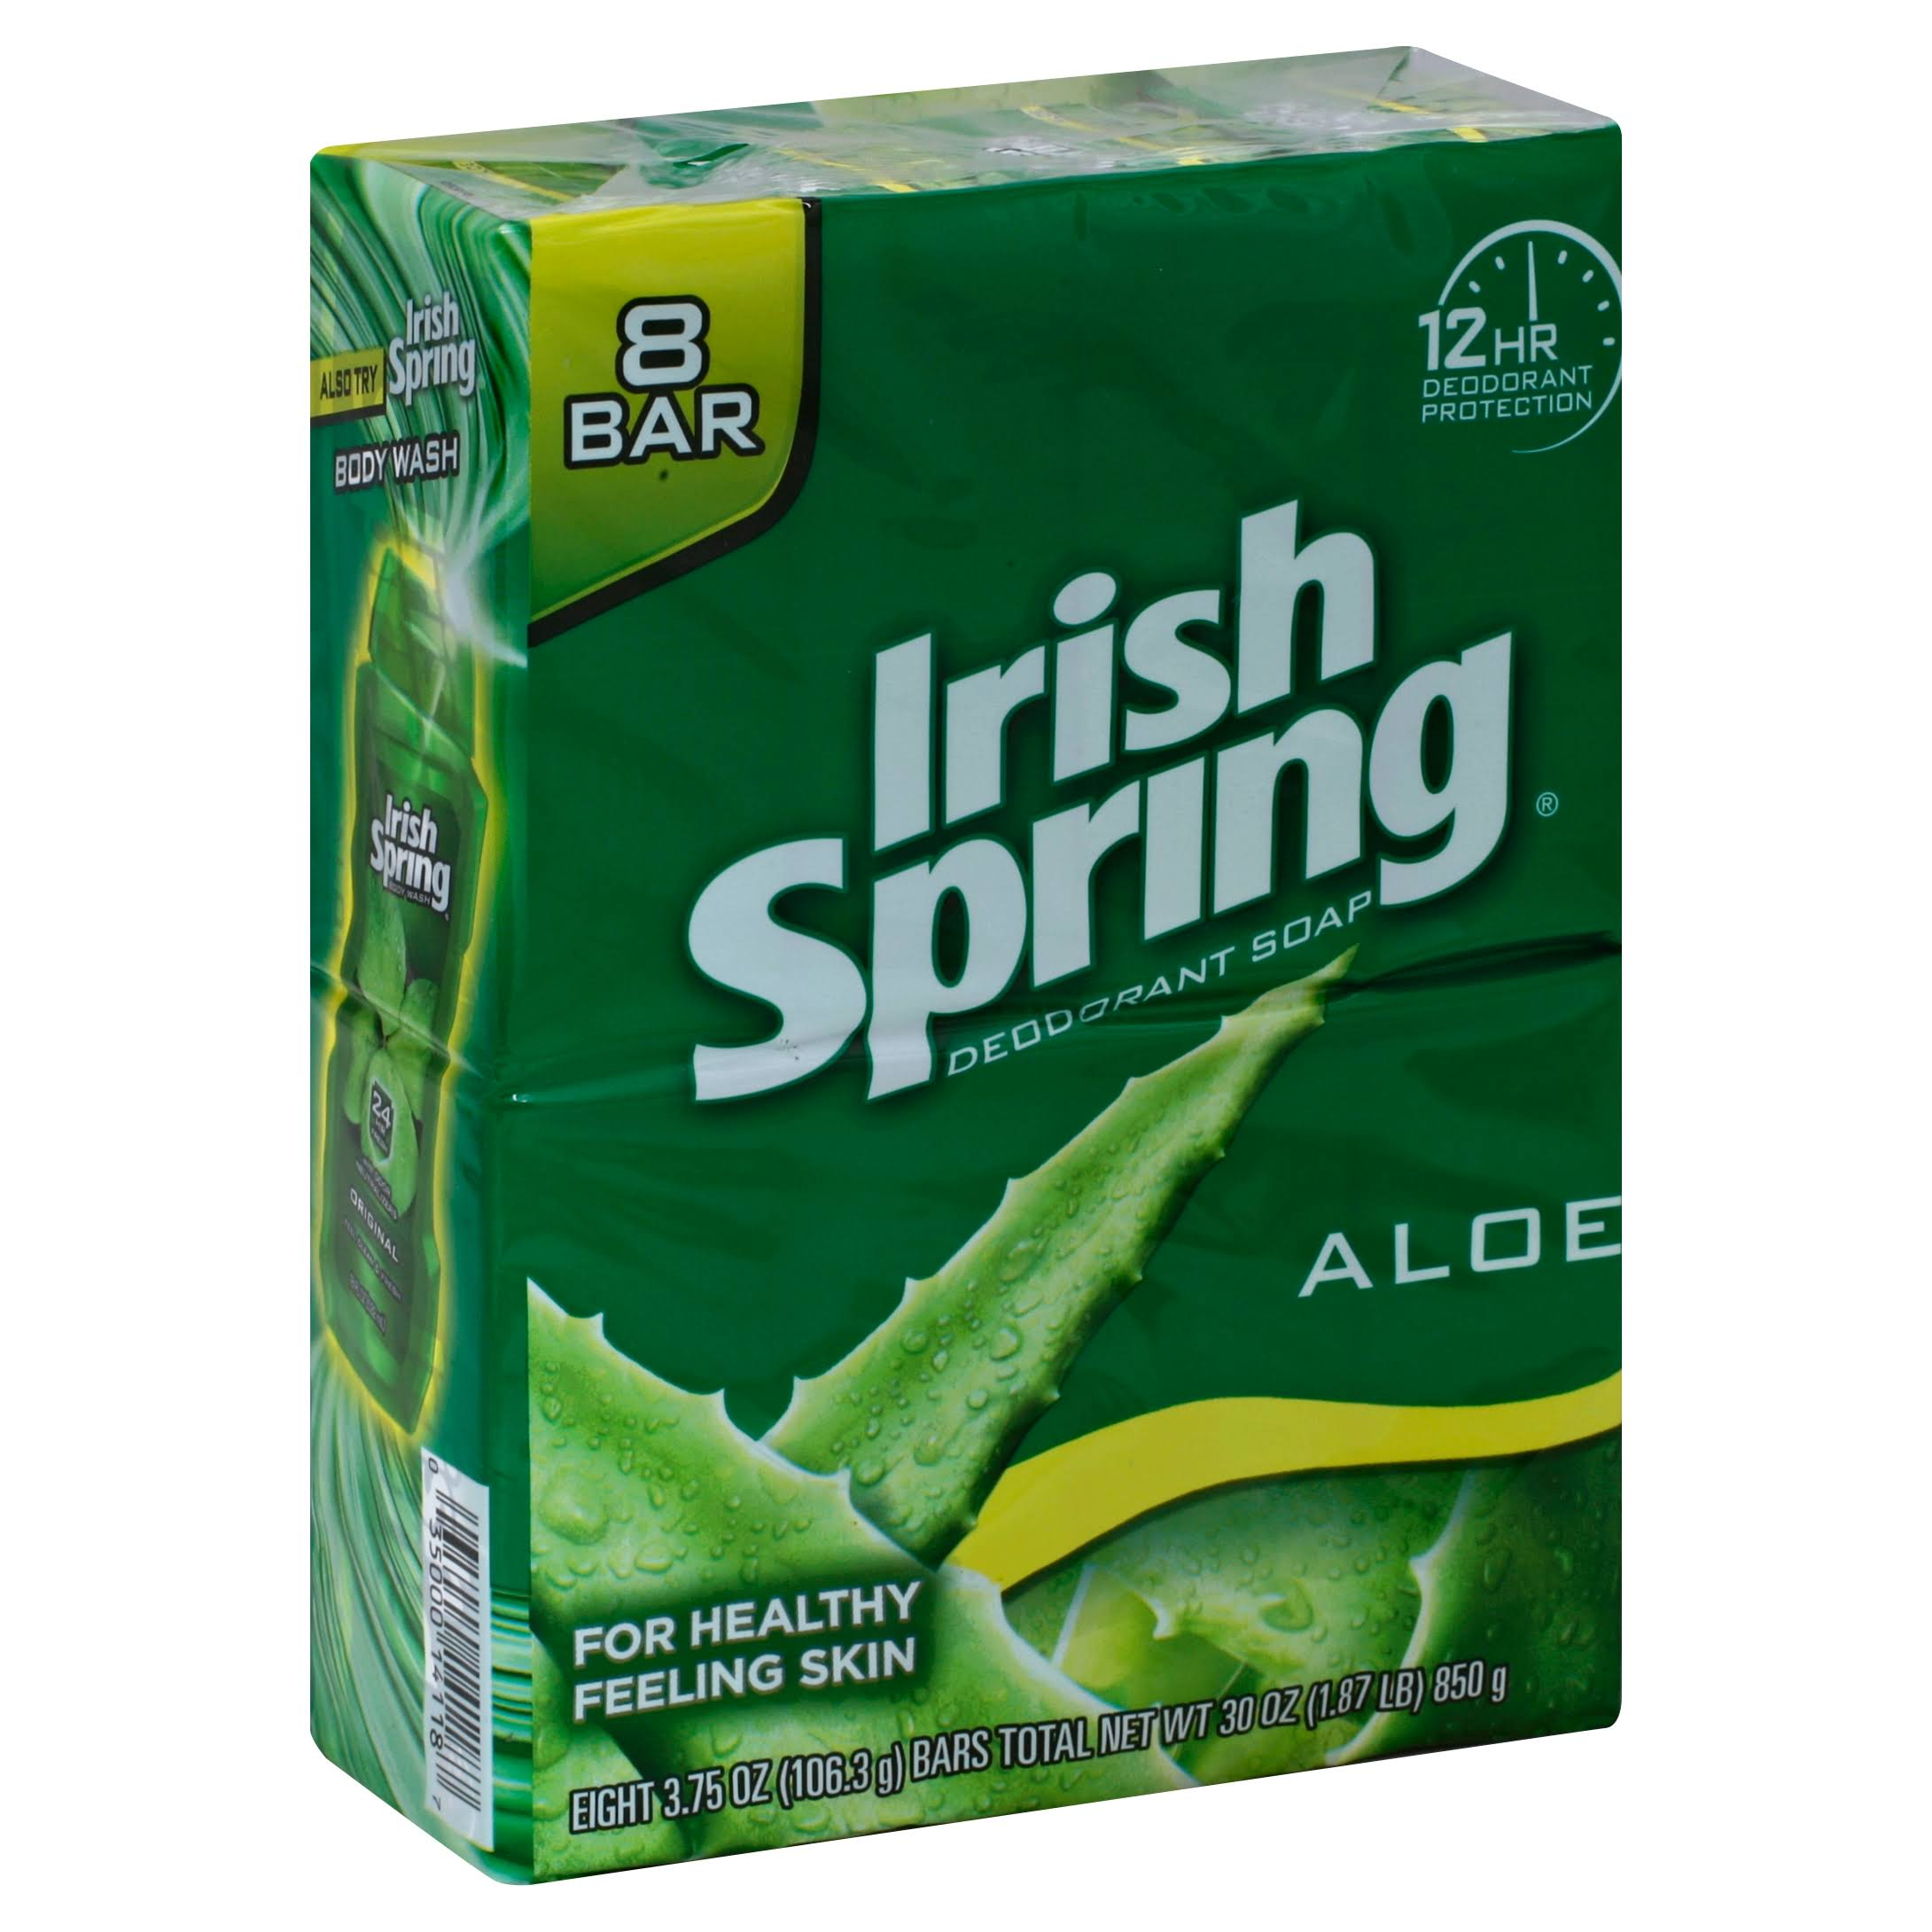 Irish Spring Aloe Deodorant Soap Bar - 3.75 oz, 8 Pack